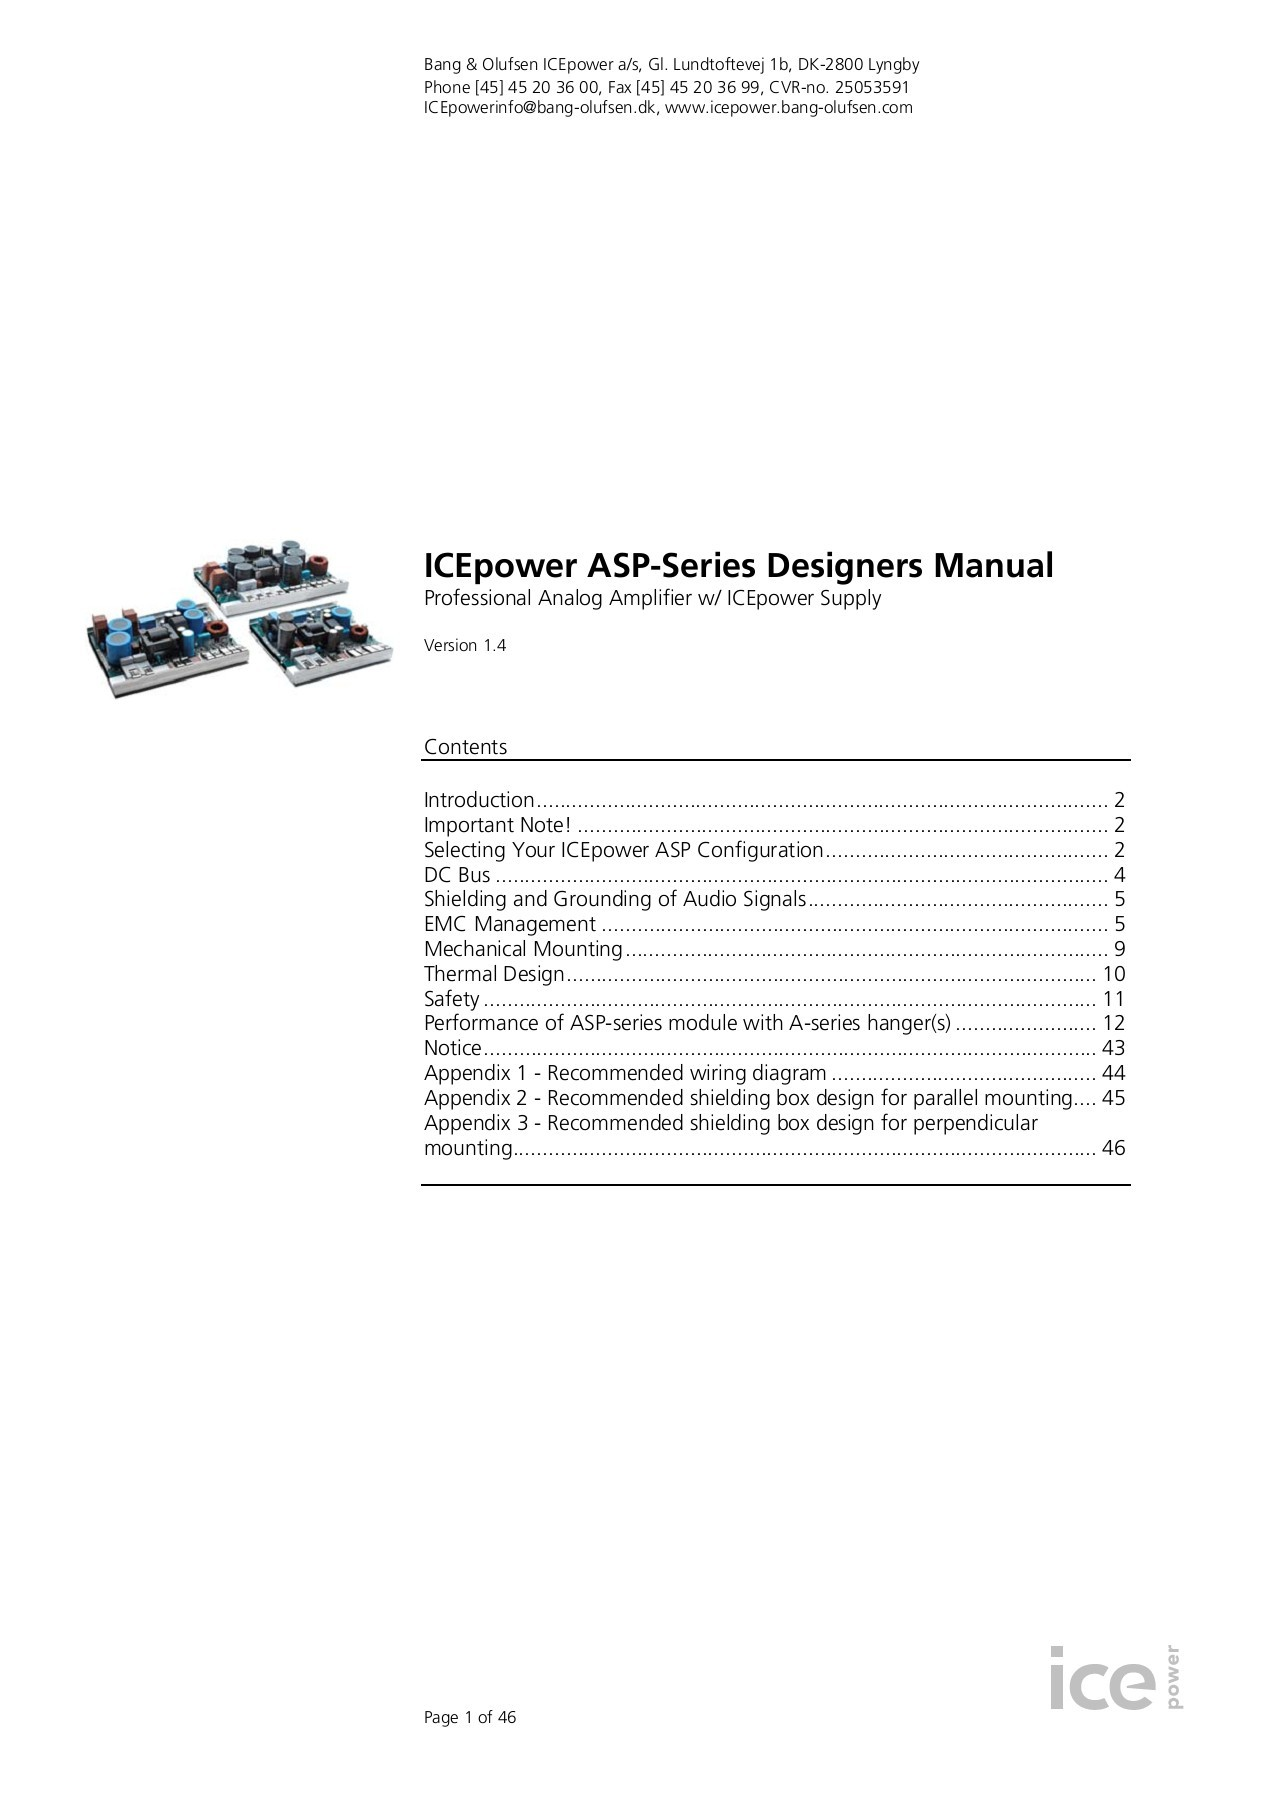 hight resolution of icepower asp series designers manual soundhouse pages 1 46 text version fliphtml5